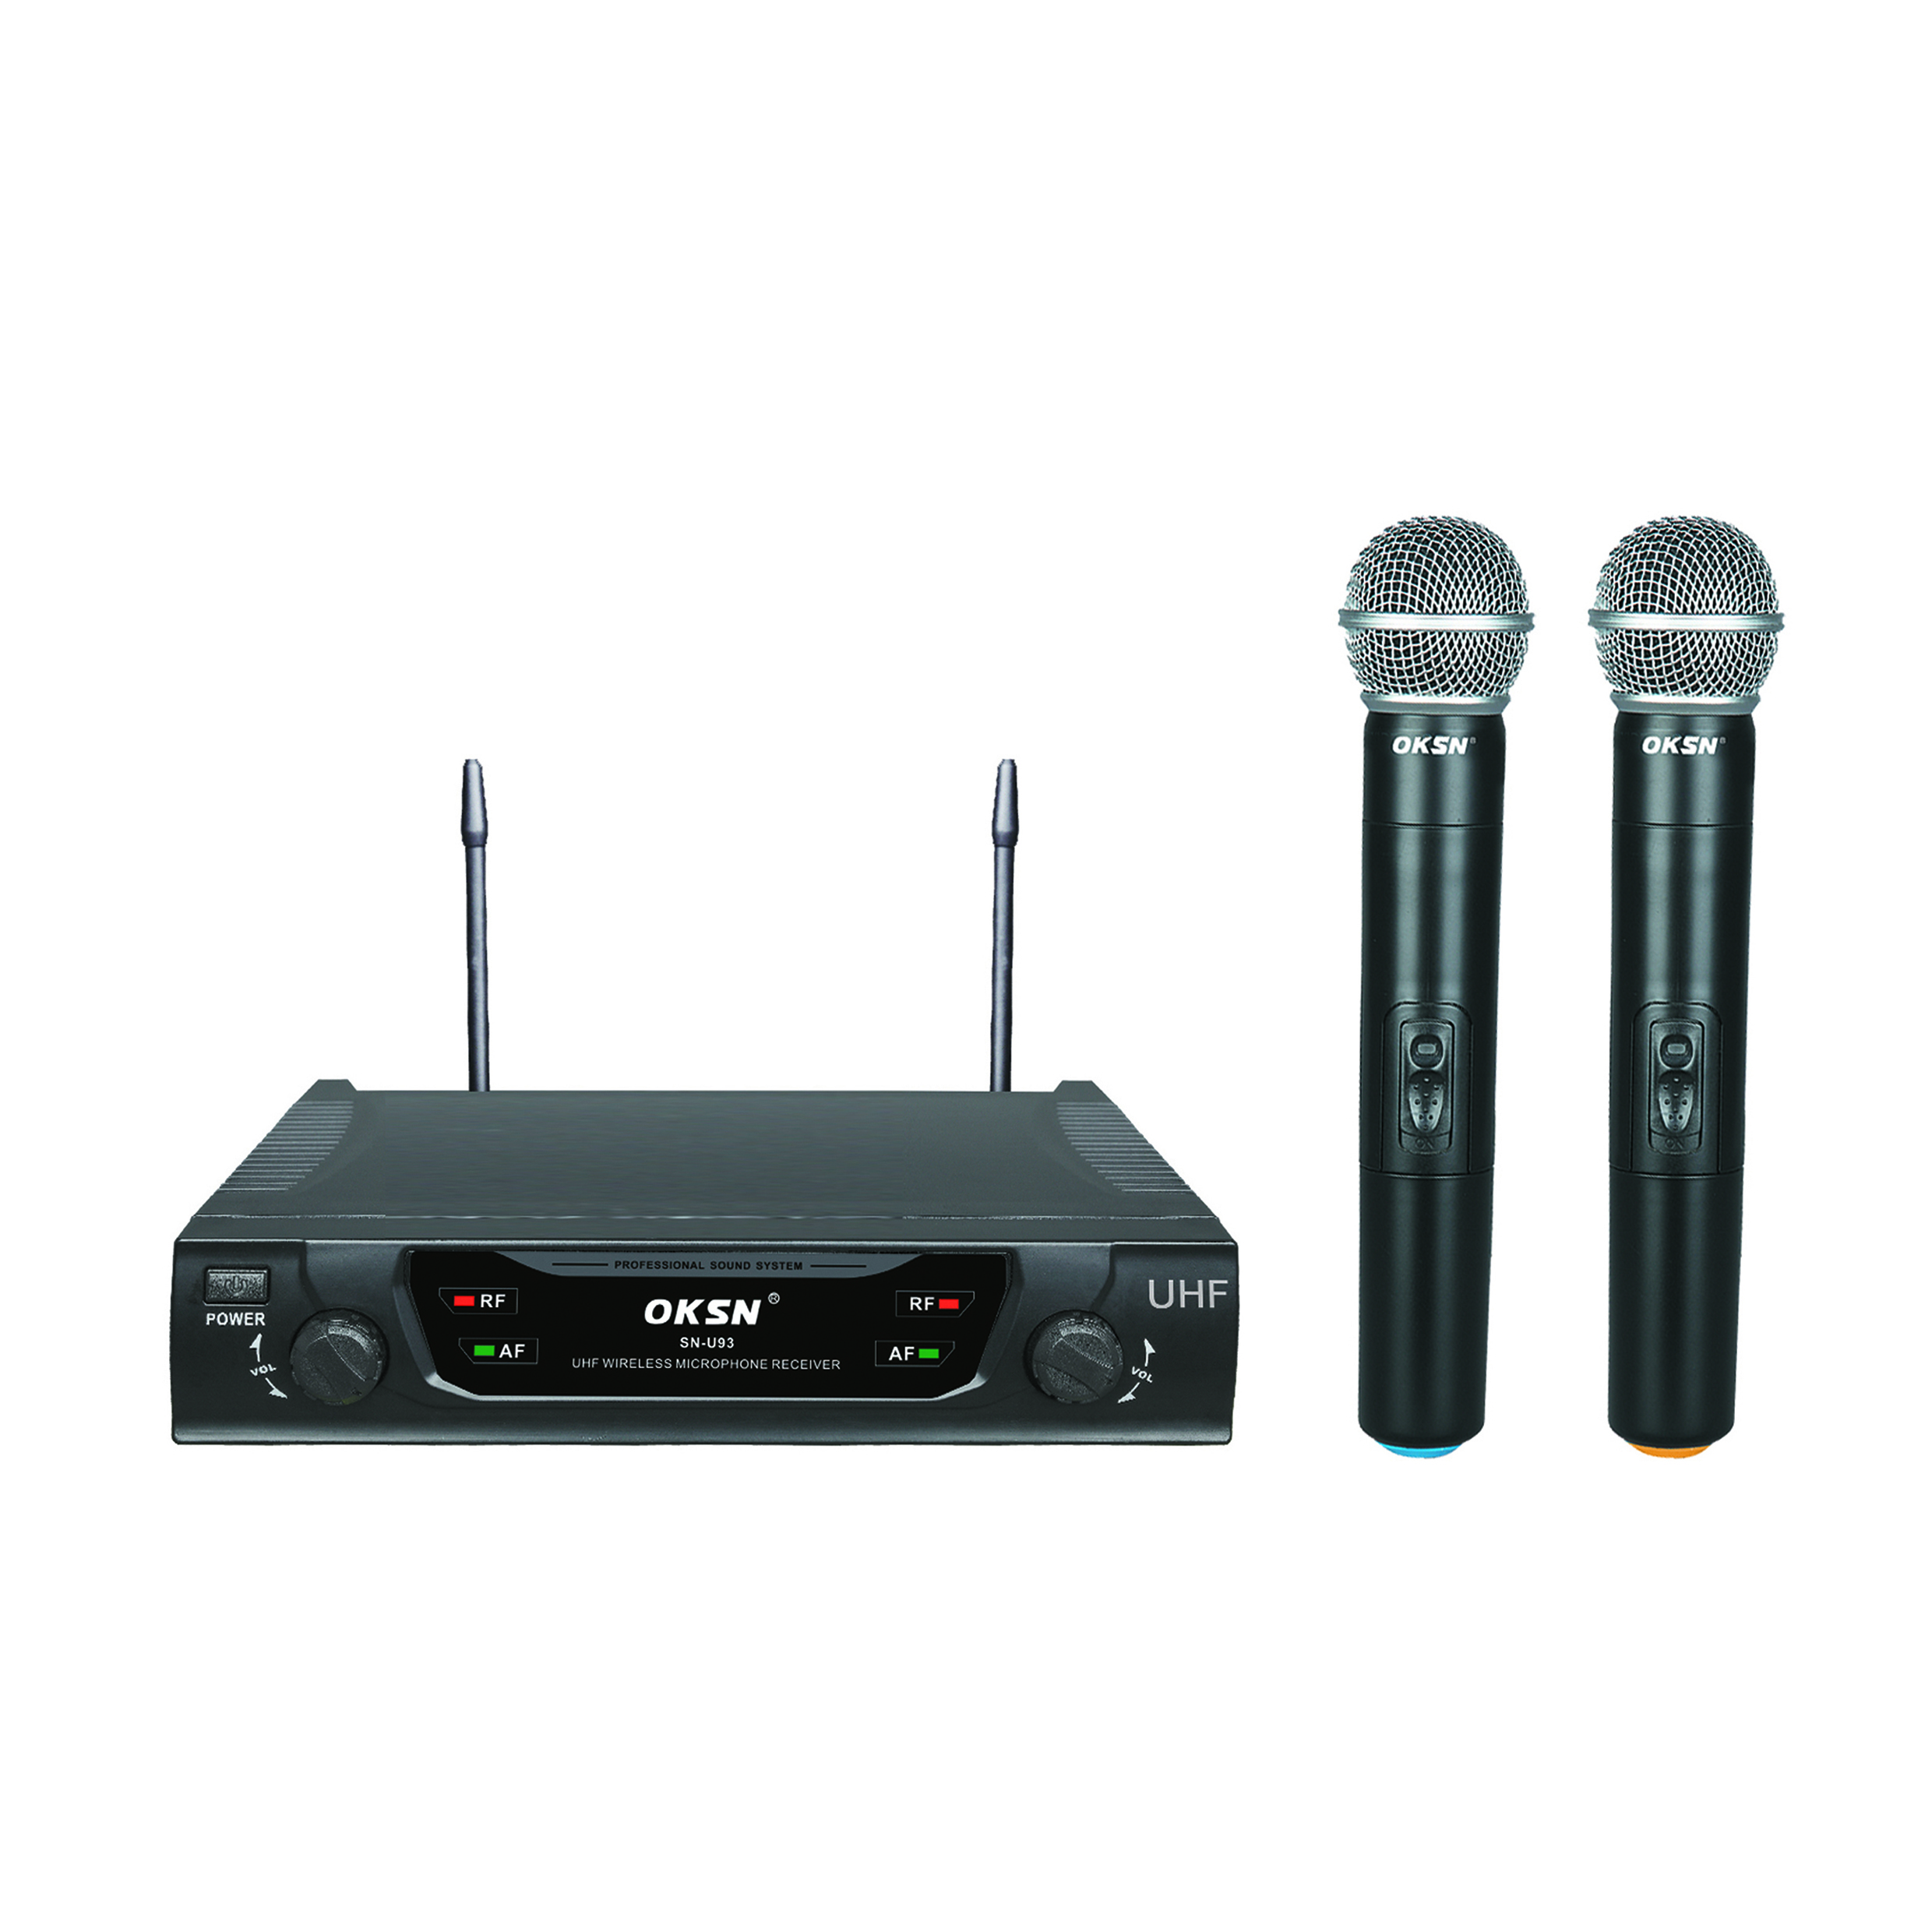 SN-U93 wireless karaoke microphone for performace